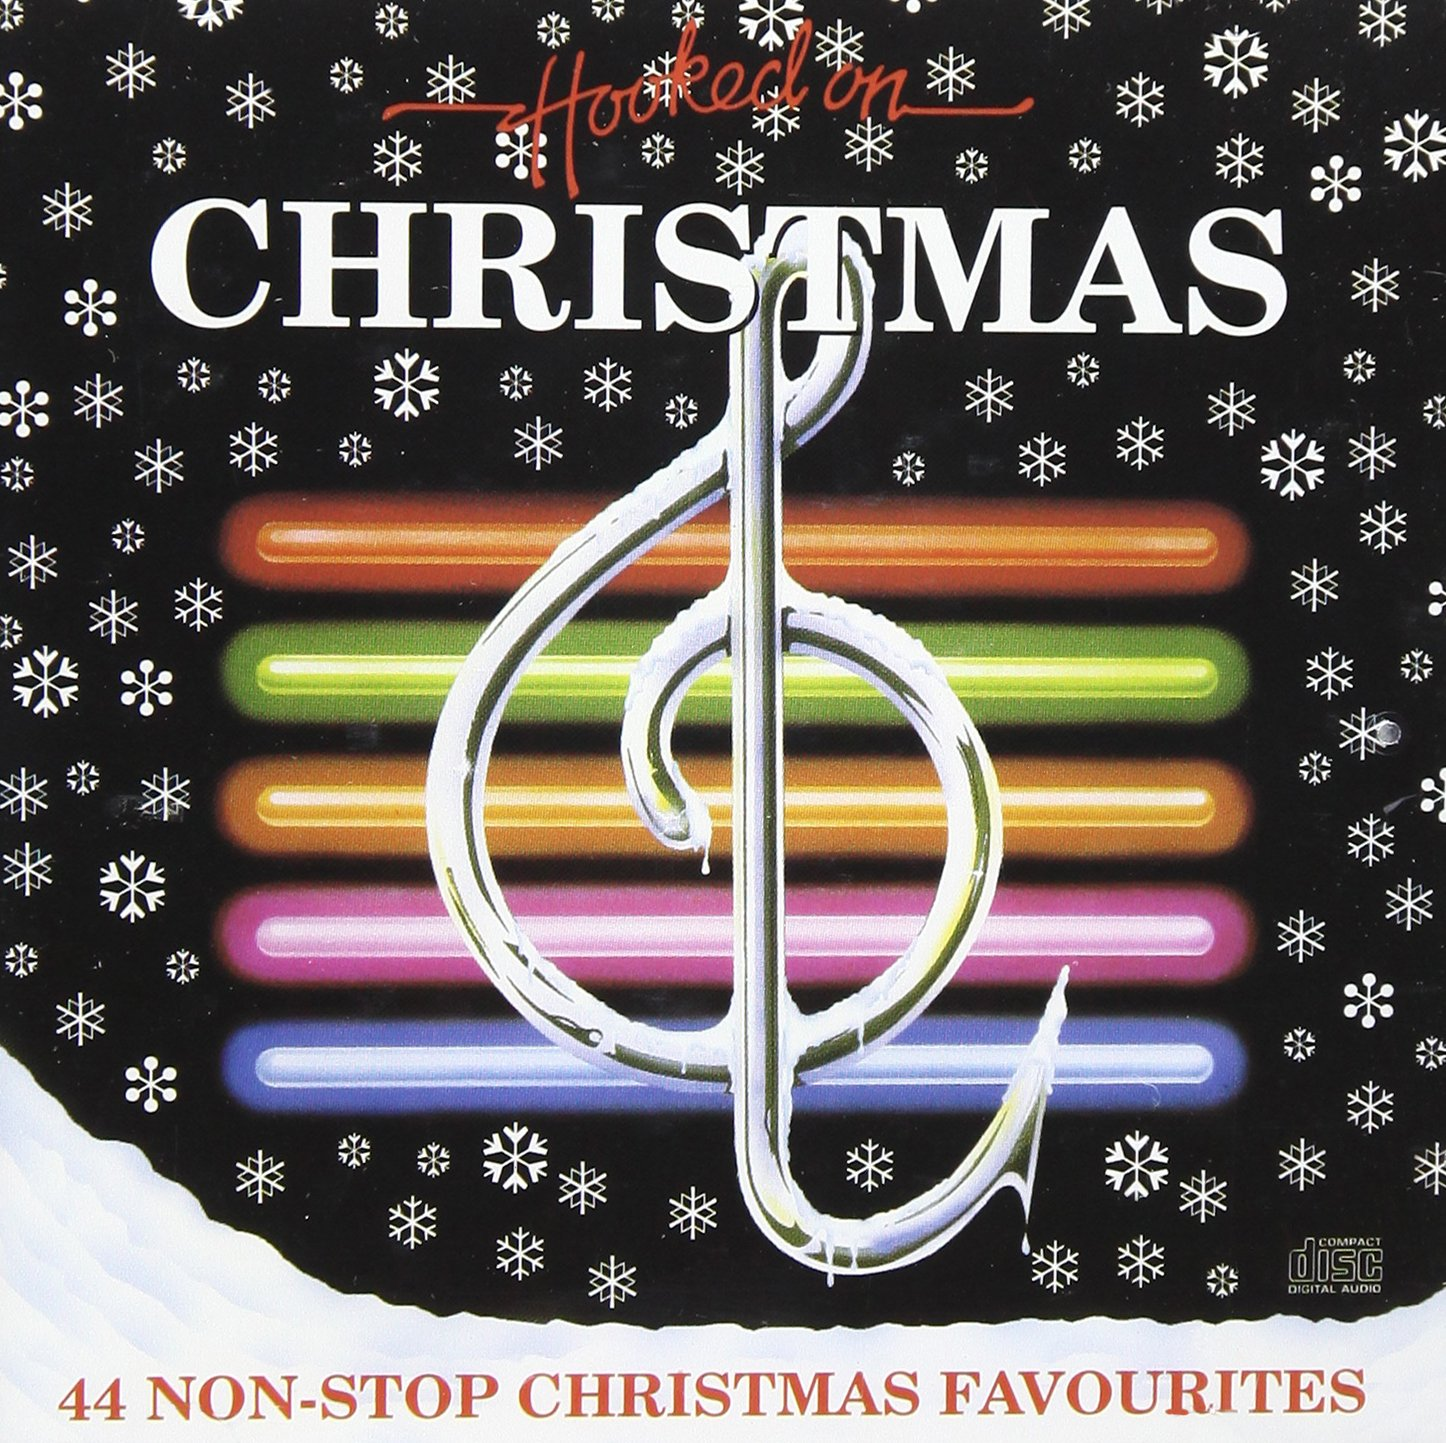 Hooked on Christmas - Hooked on Christmas: Amazon.de: Musik